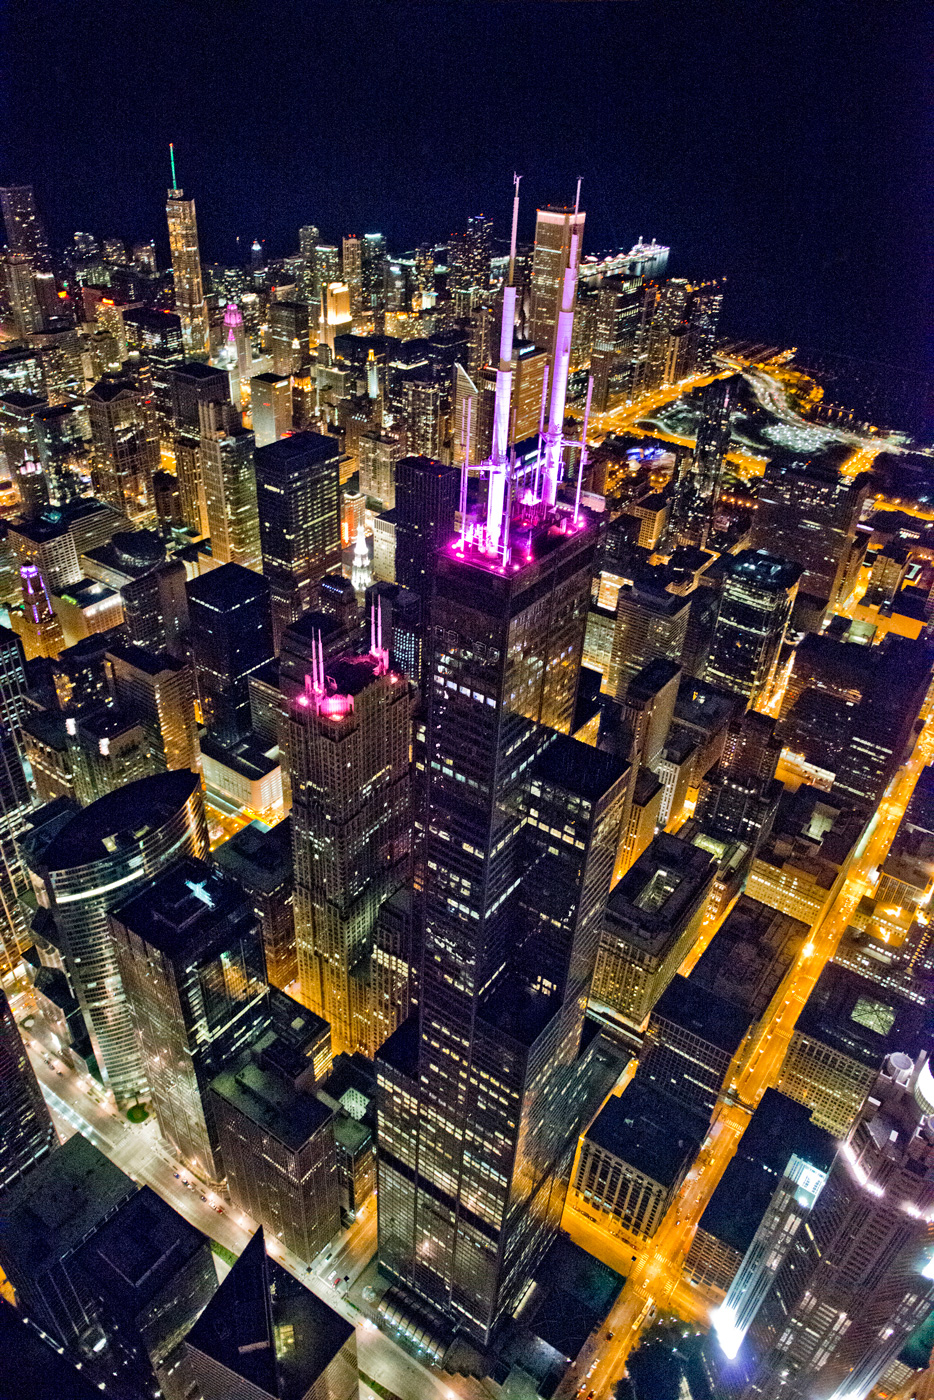 Sears Tower (c) Tigerhill Studio - All Rights Reserved